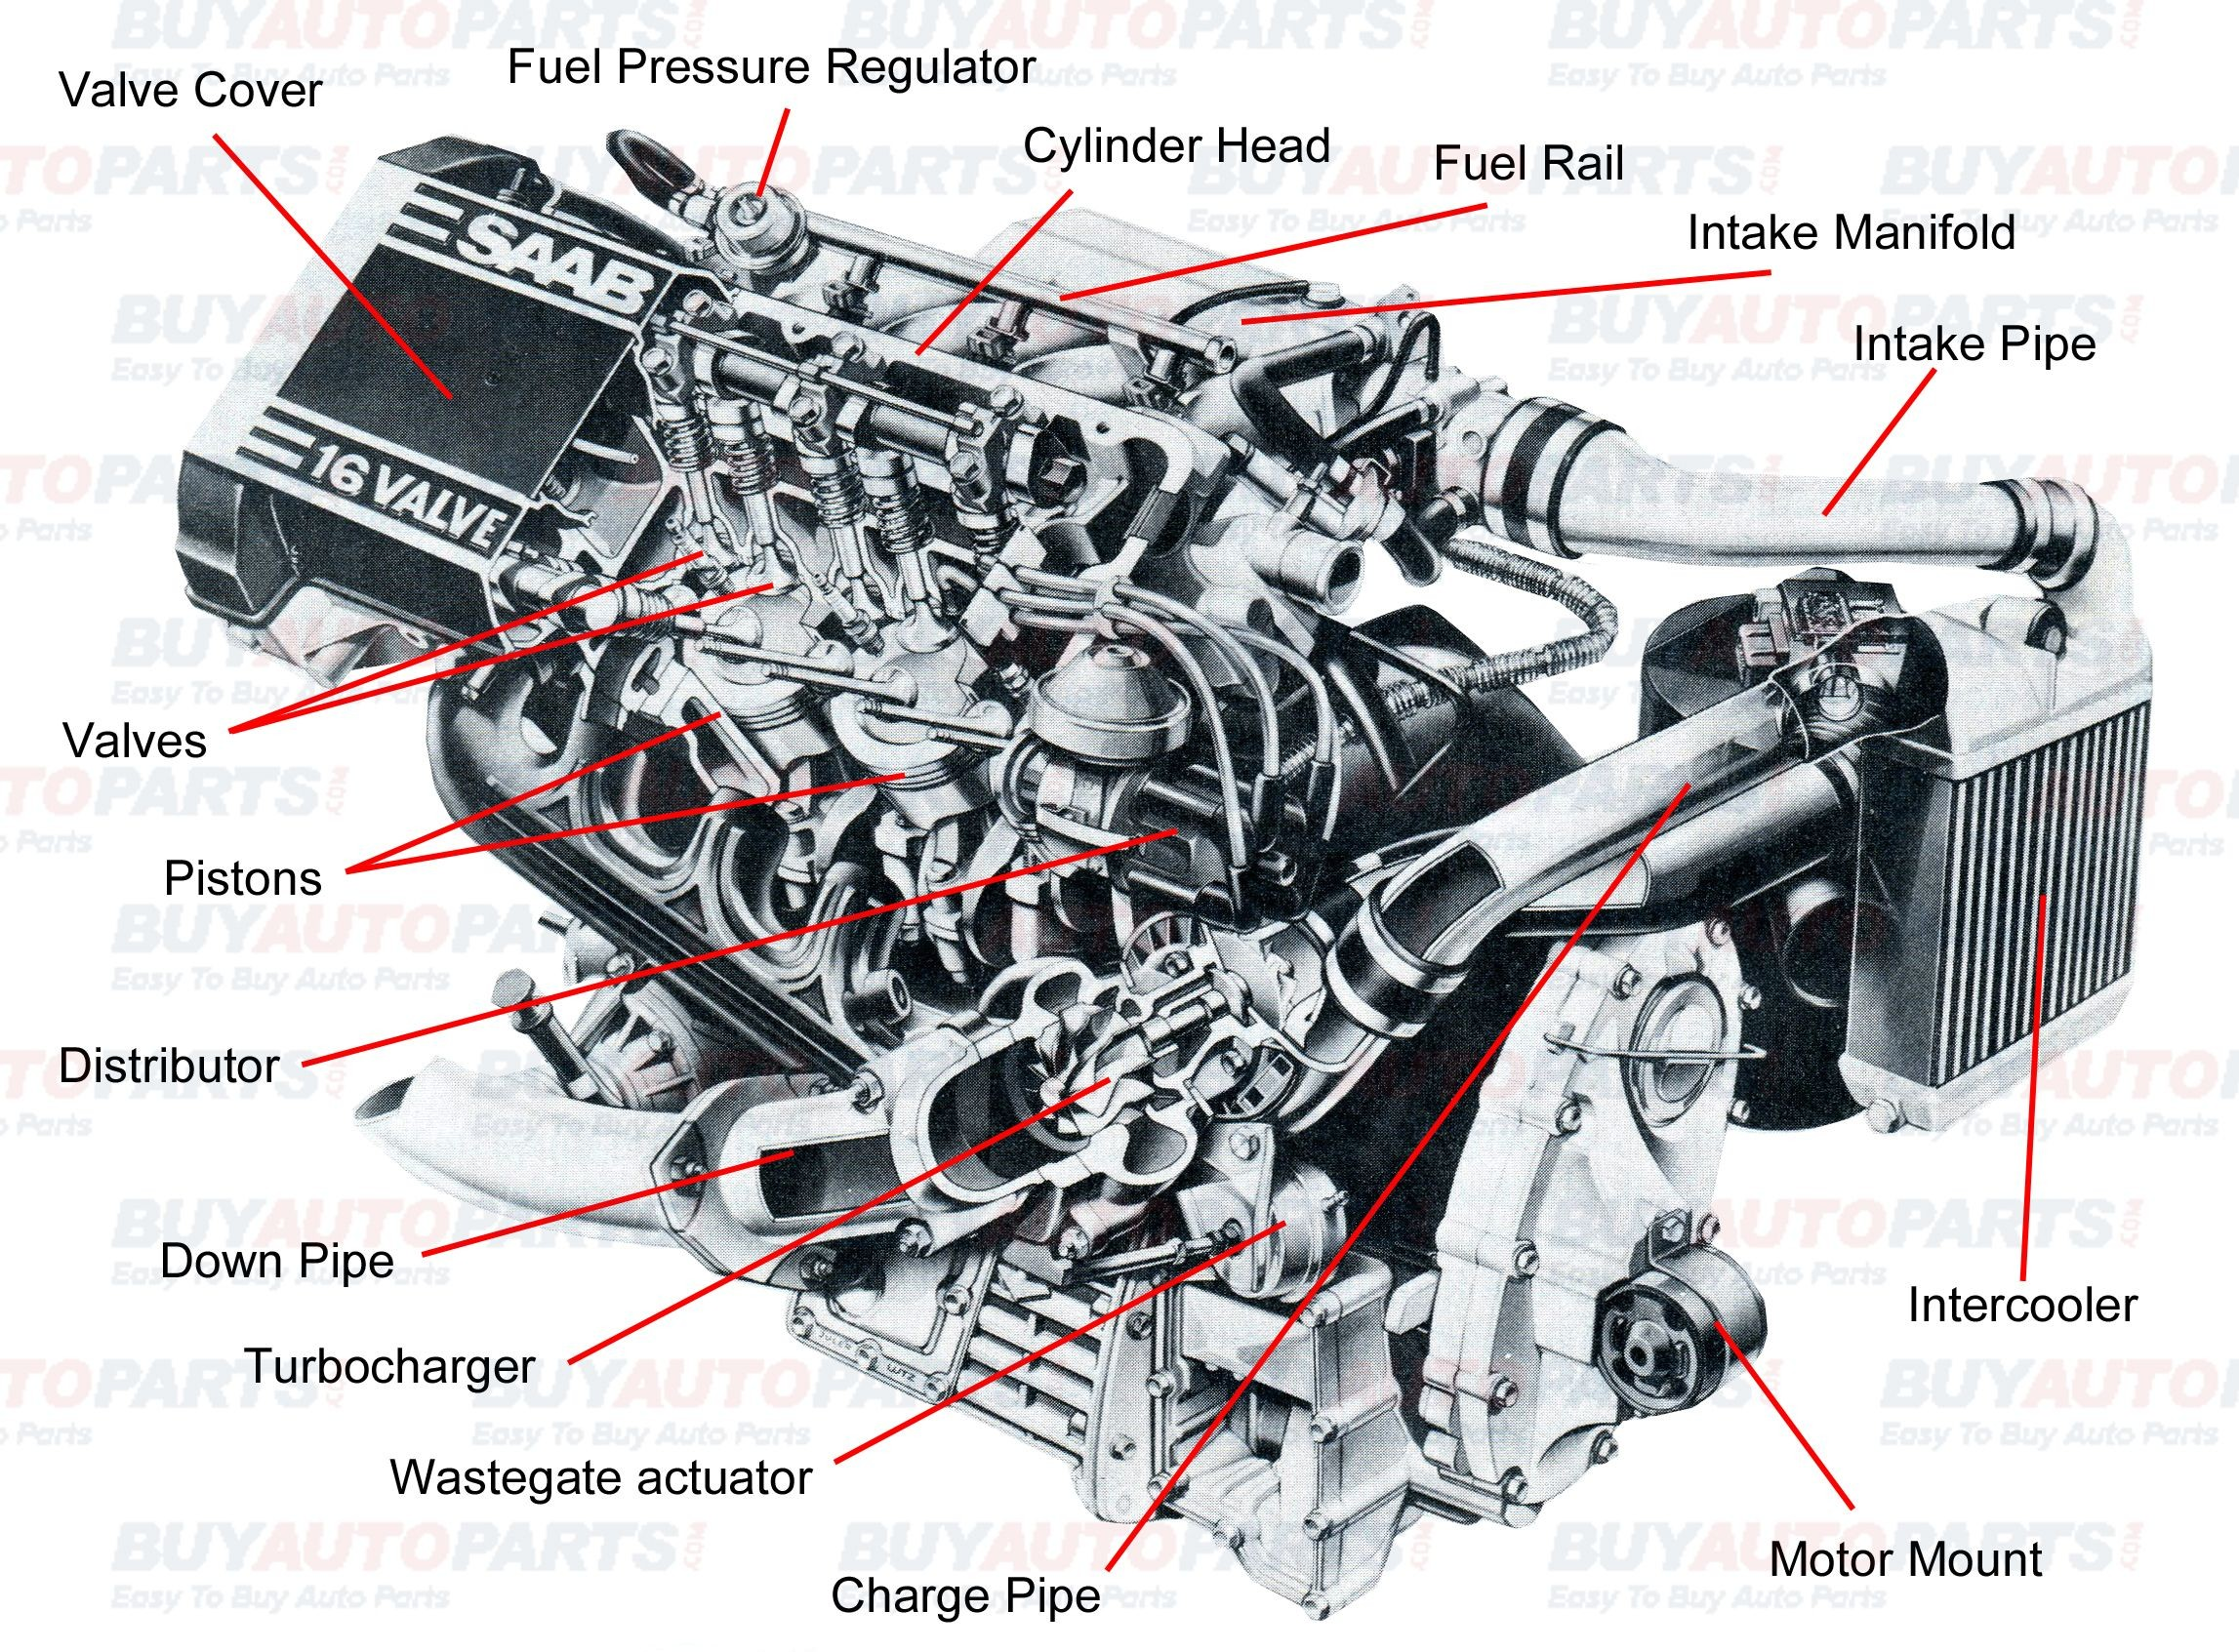 Car Radiator Parts Diagram Pin by Jimmiejanet Testellamwfz On What Does An Engine with Turbo Of Car Radiator Parts Diagram